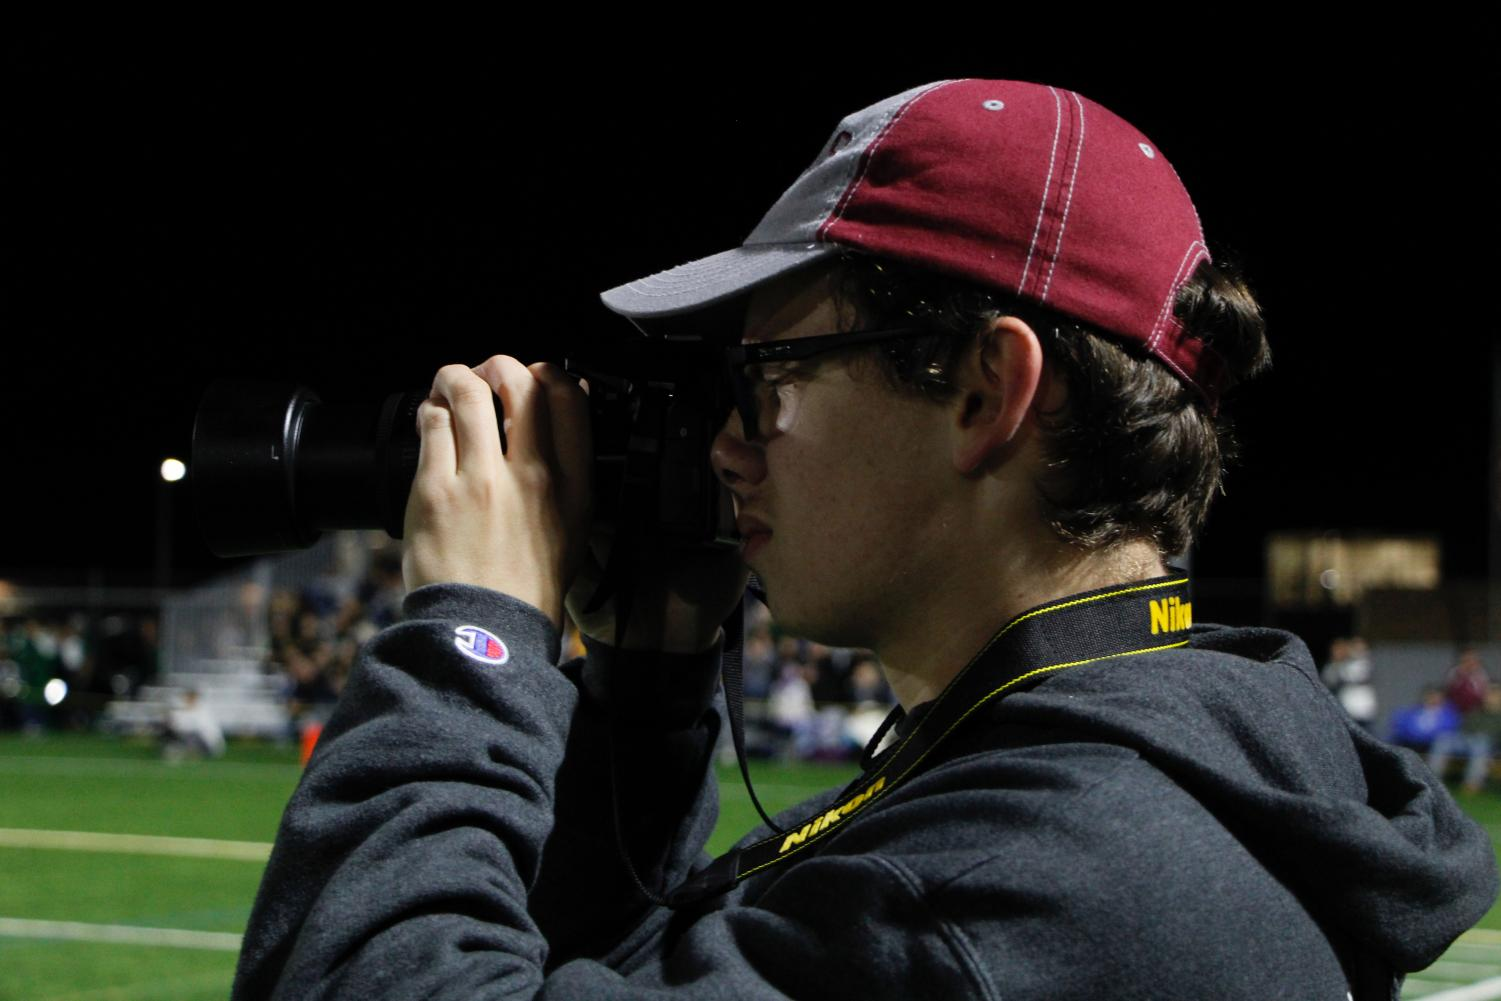 Caleb Craig, photographer, gets ready to snap an action shot of the State High vs. Central Dauphin game.